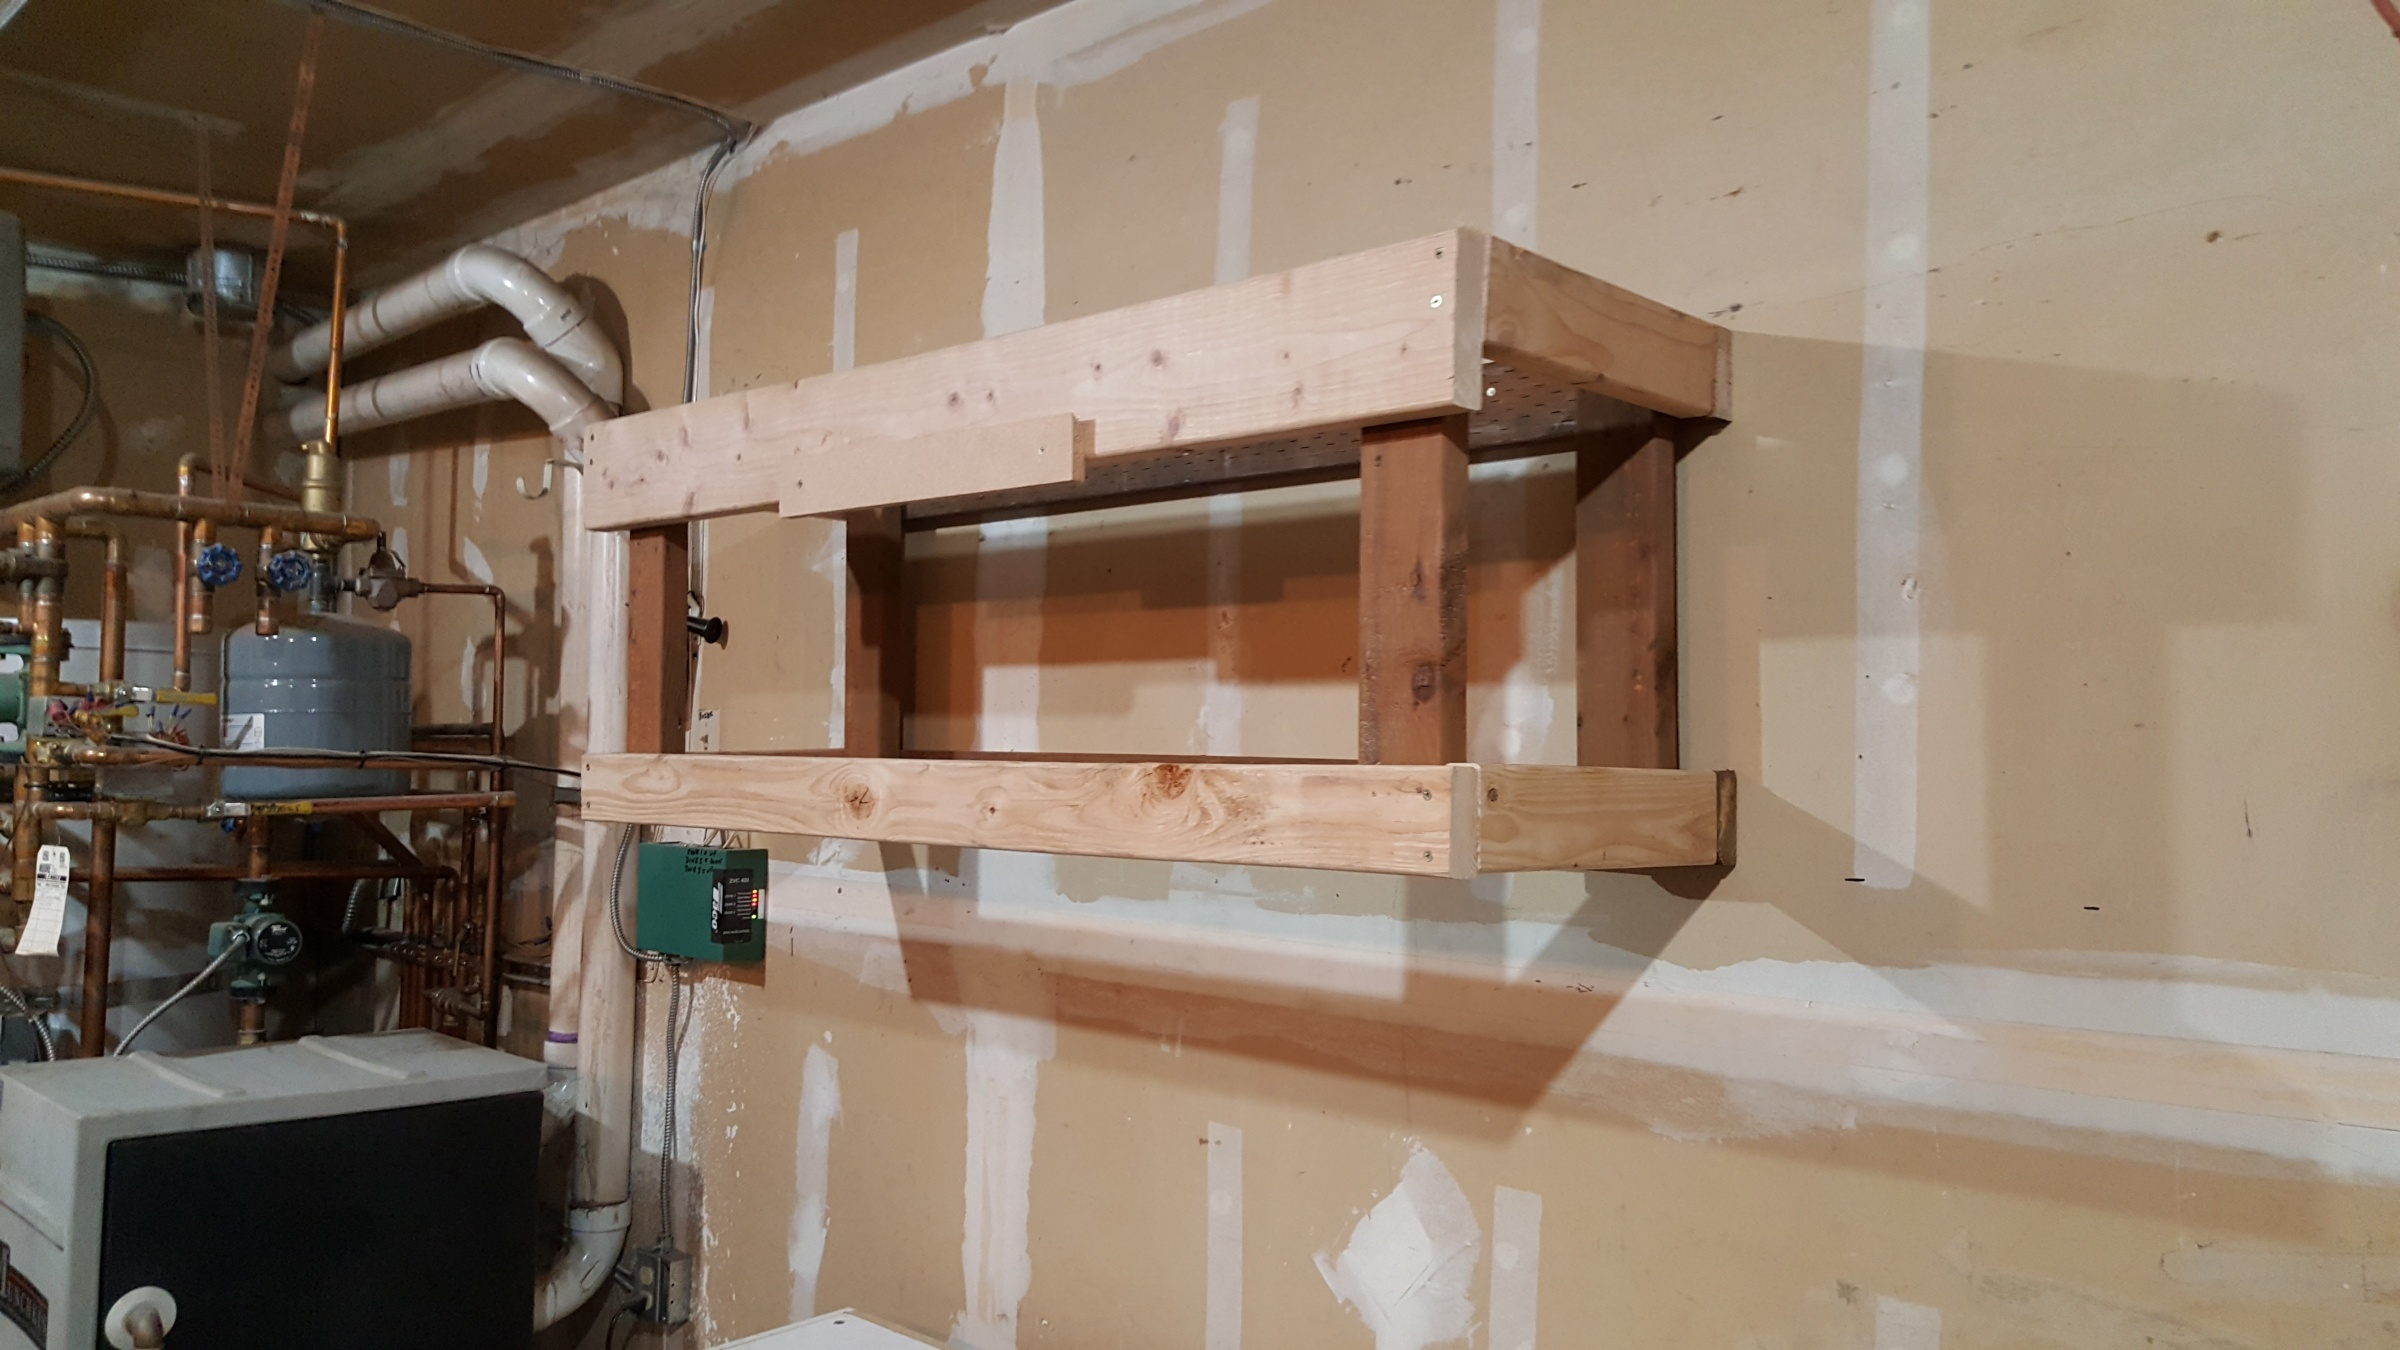 Weekend Quickies (Small DIY projects)-20190119_171135.jpg